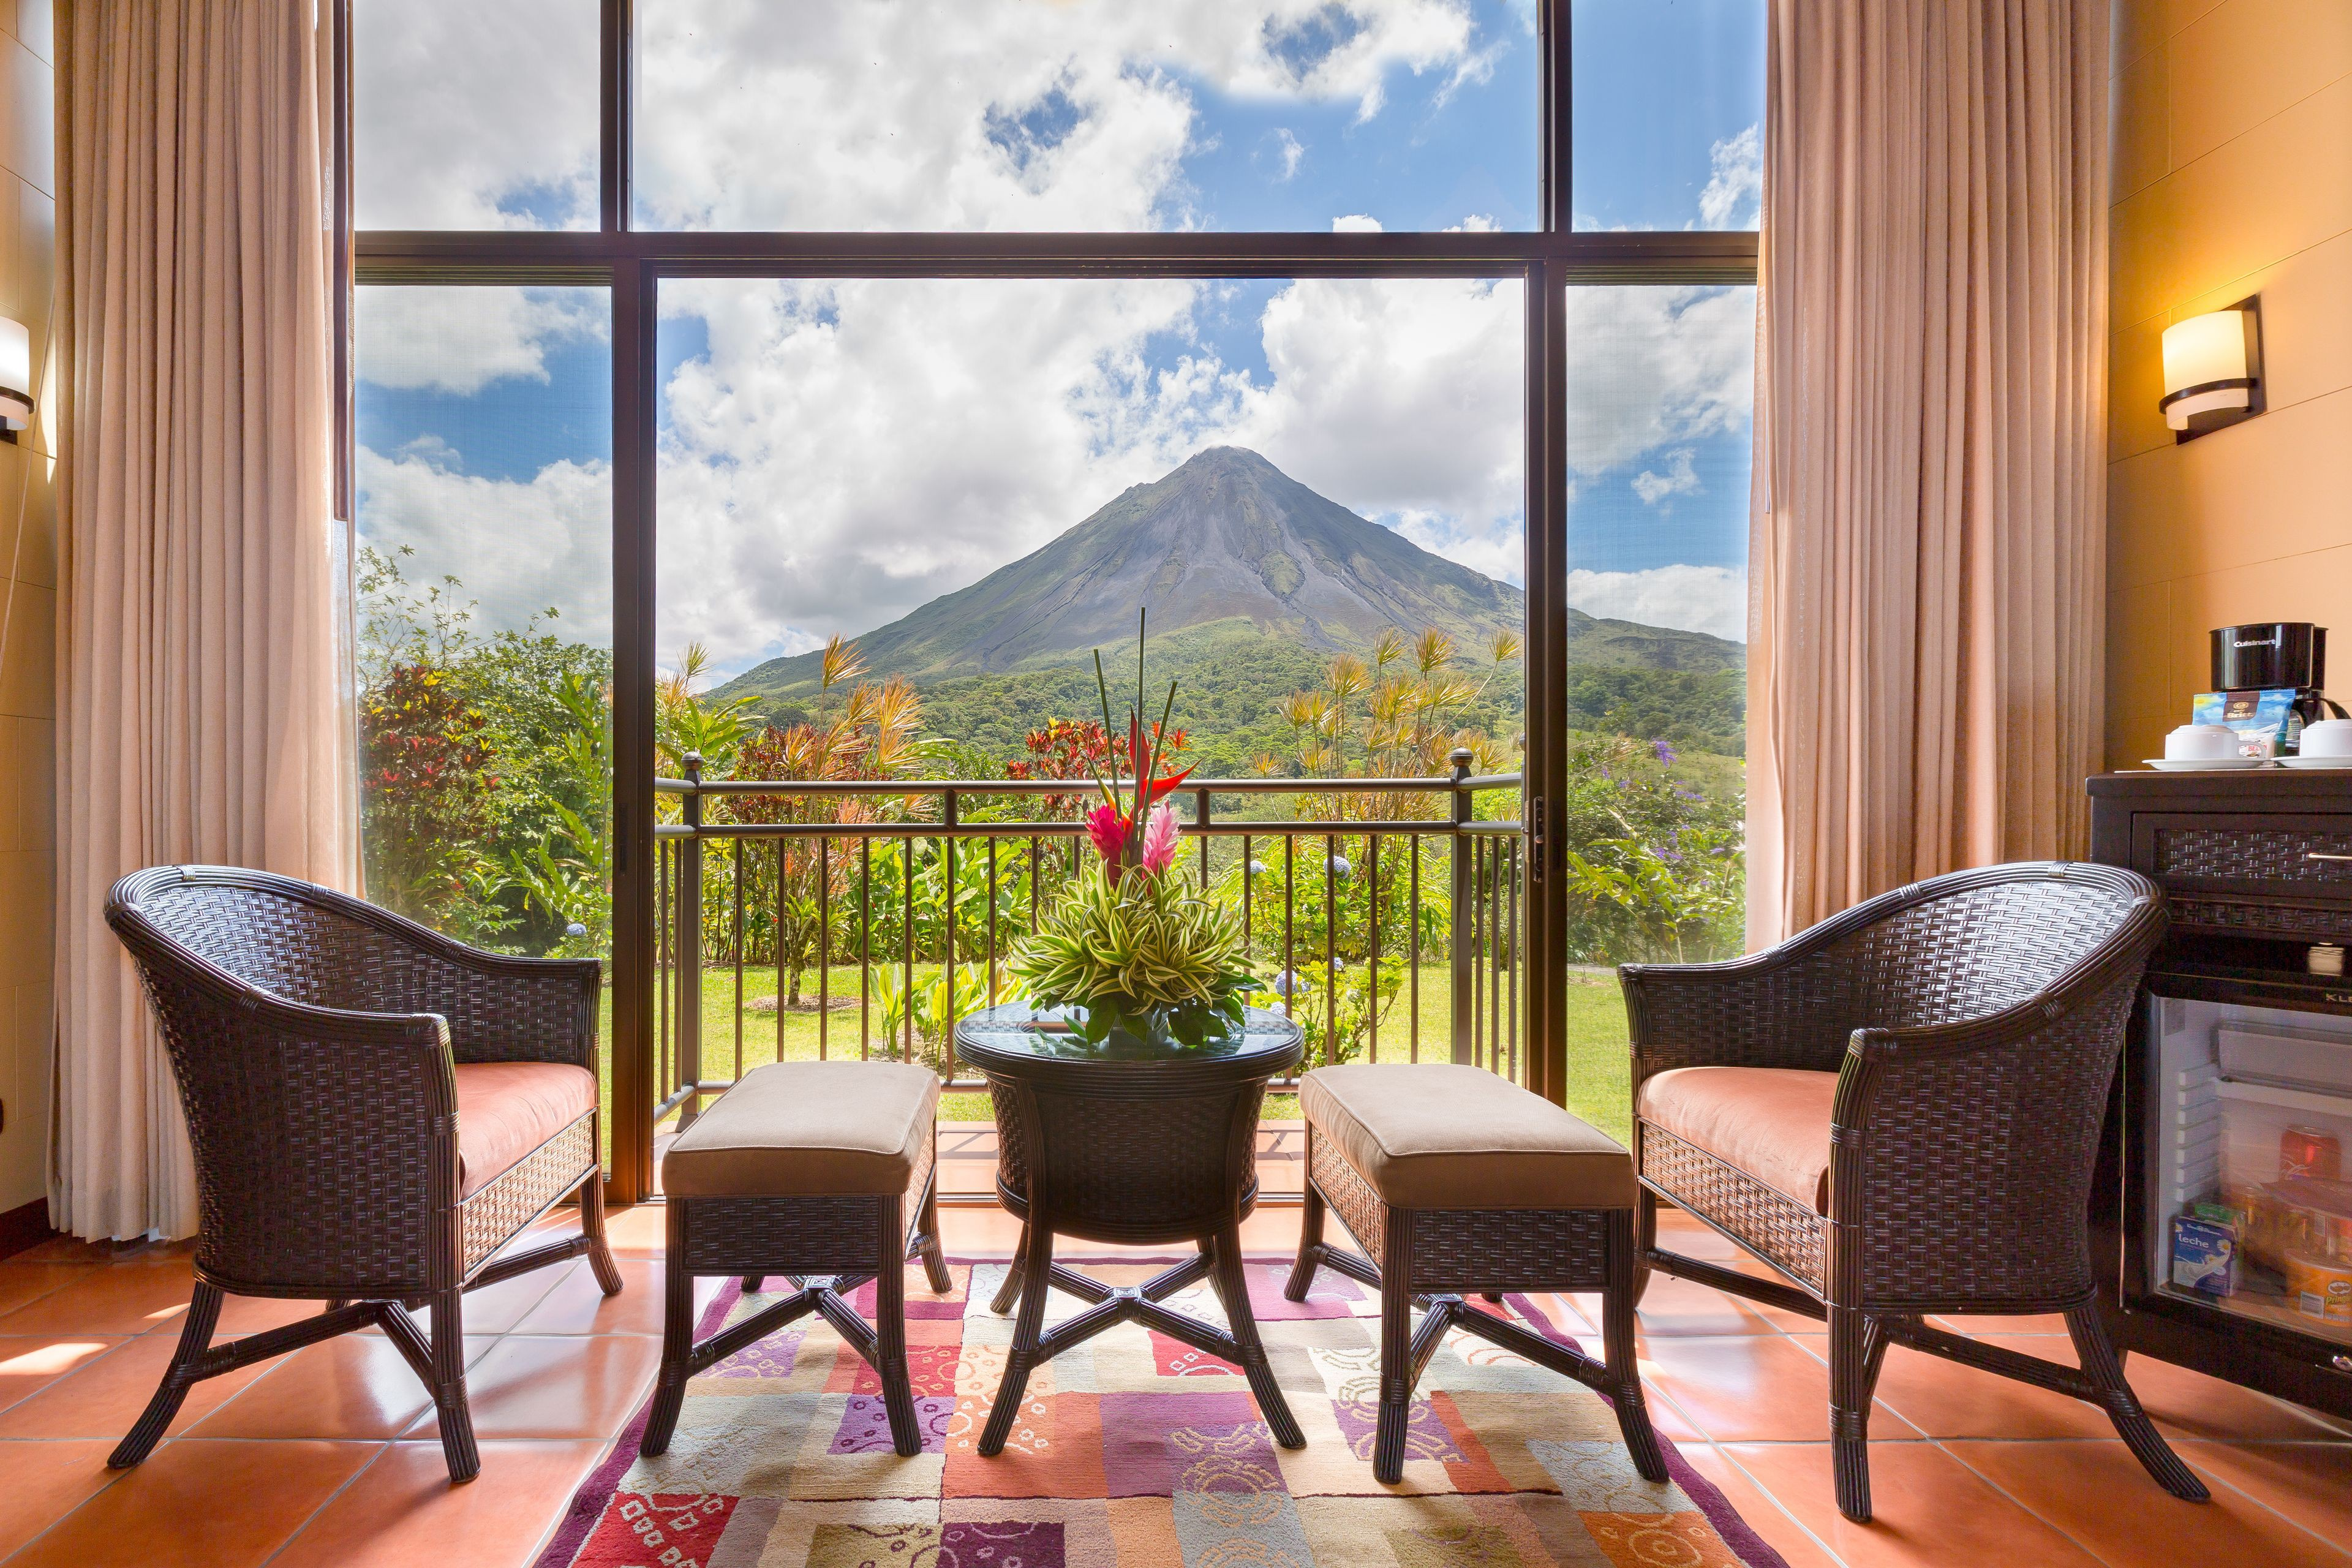 Courtesy of Arenal Kioro Suites and Spa / Expedia